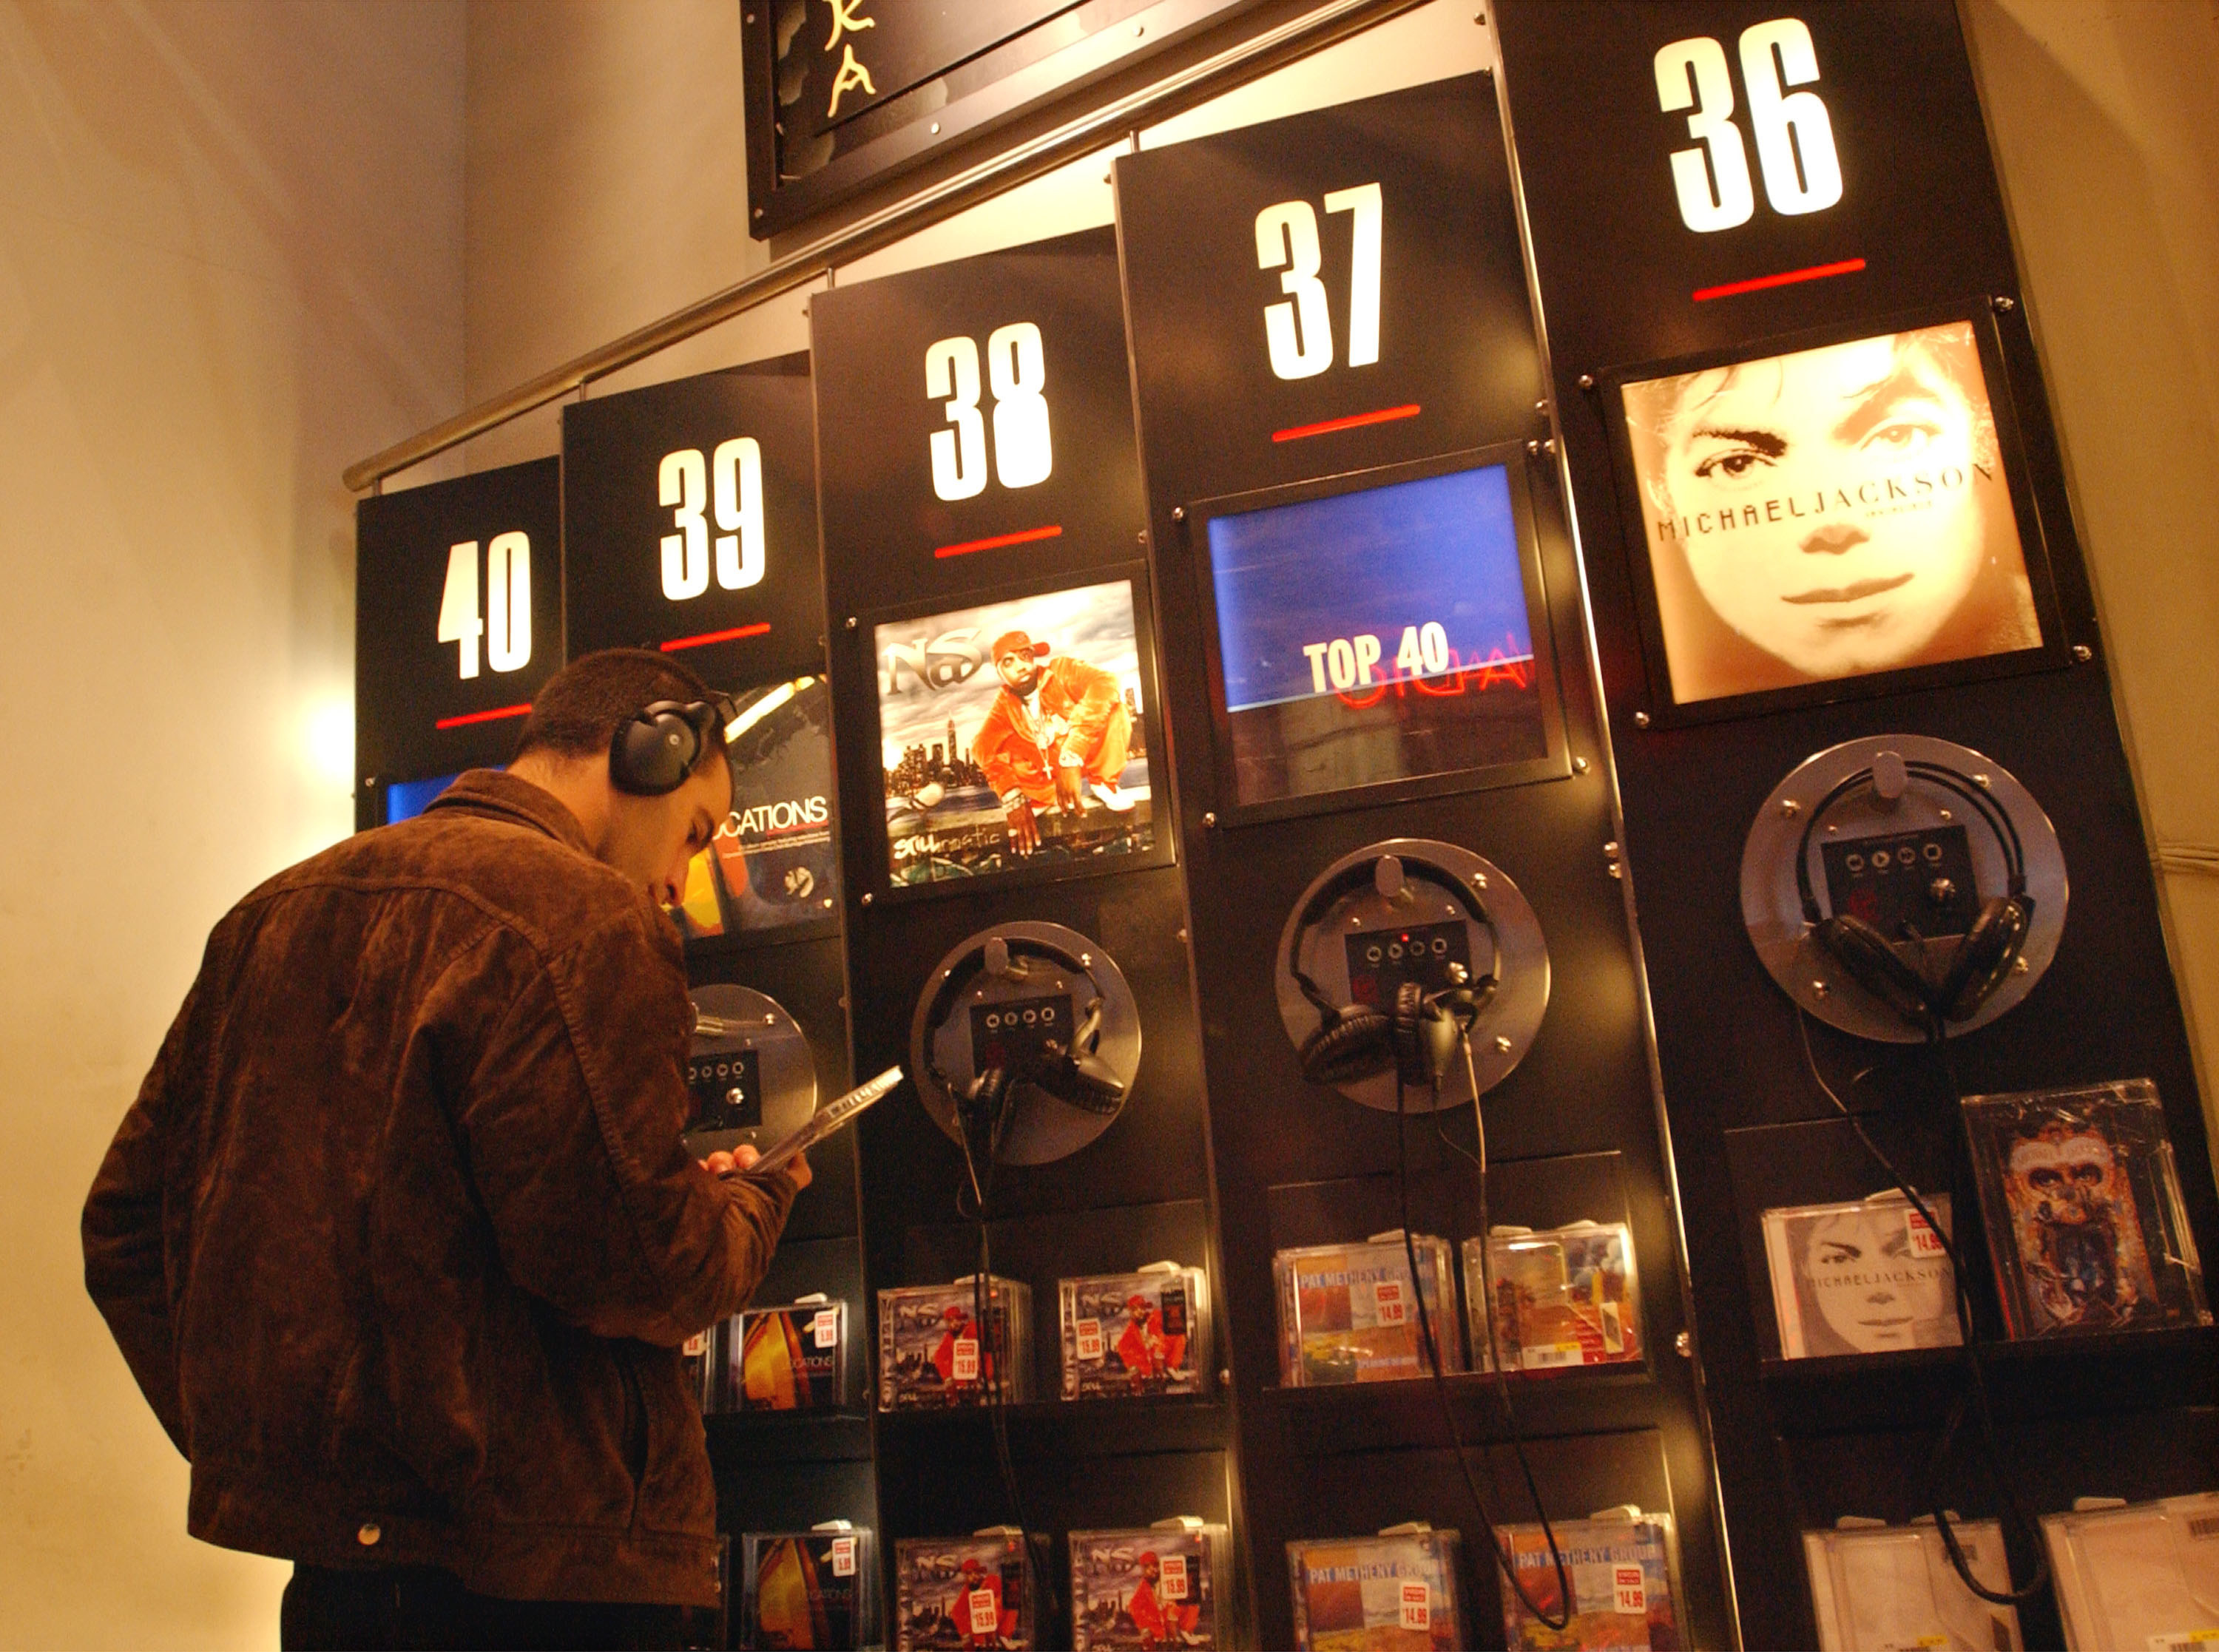 A man listening to a CD while at a CD kiosk in the Virgin Megastore